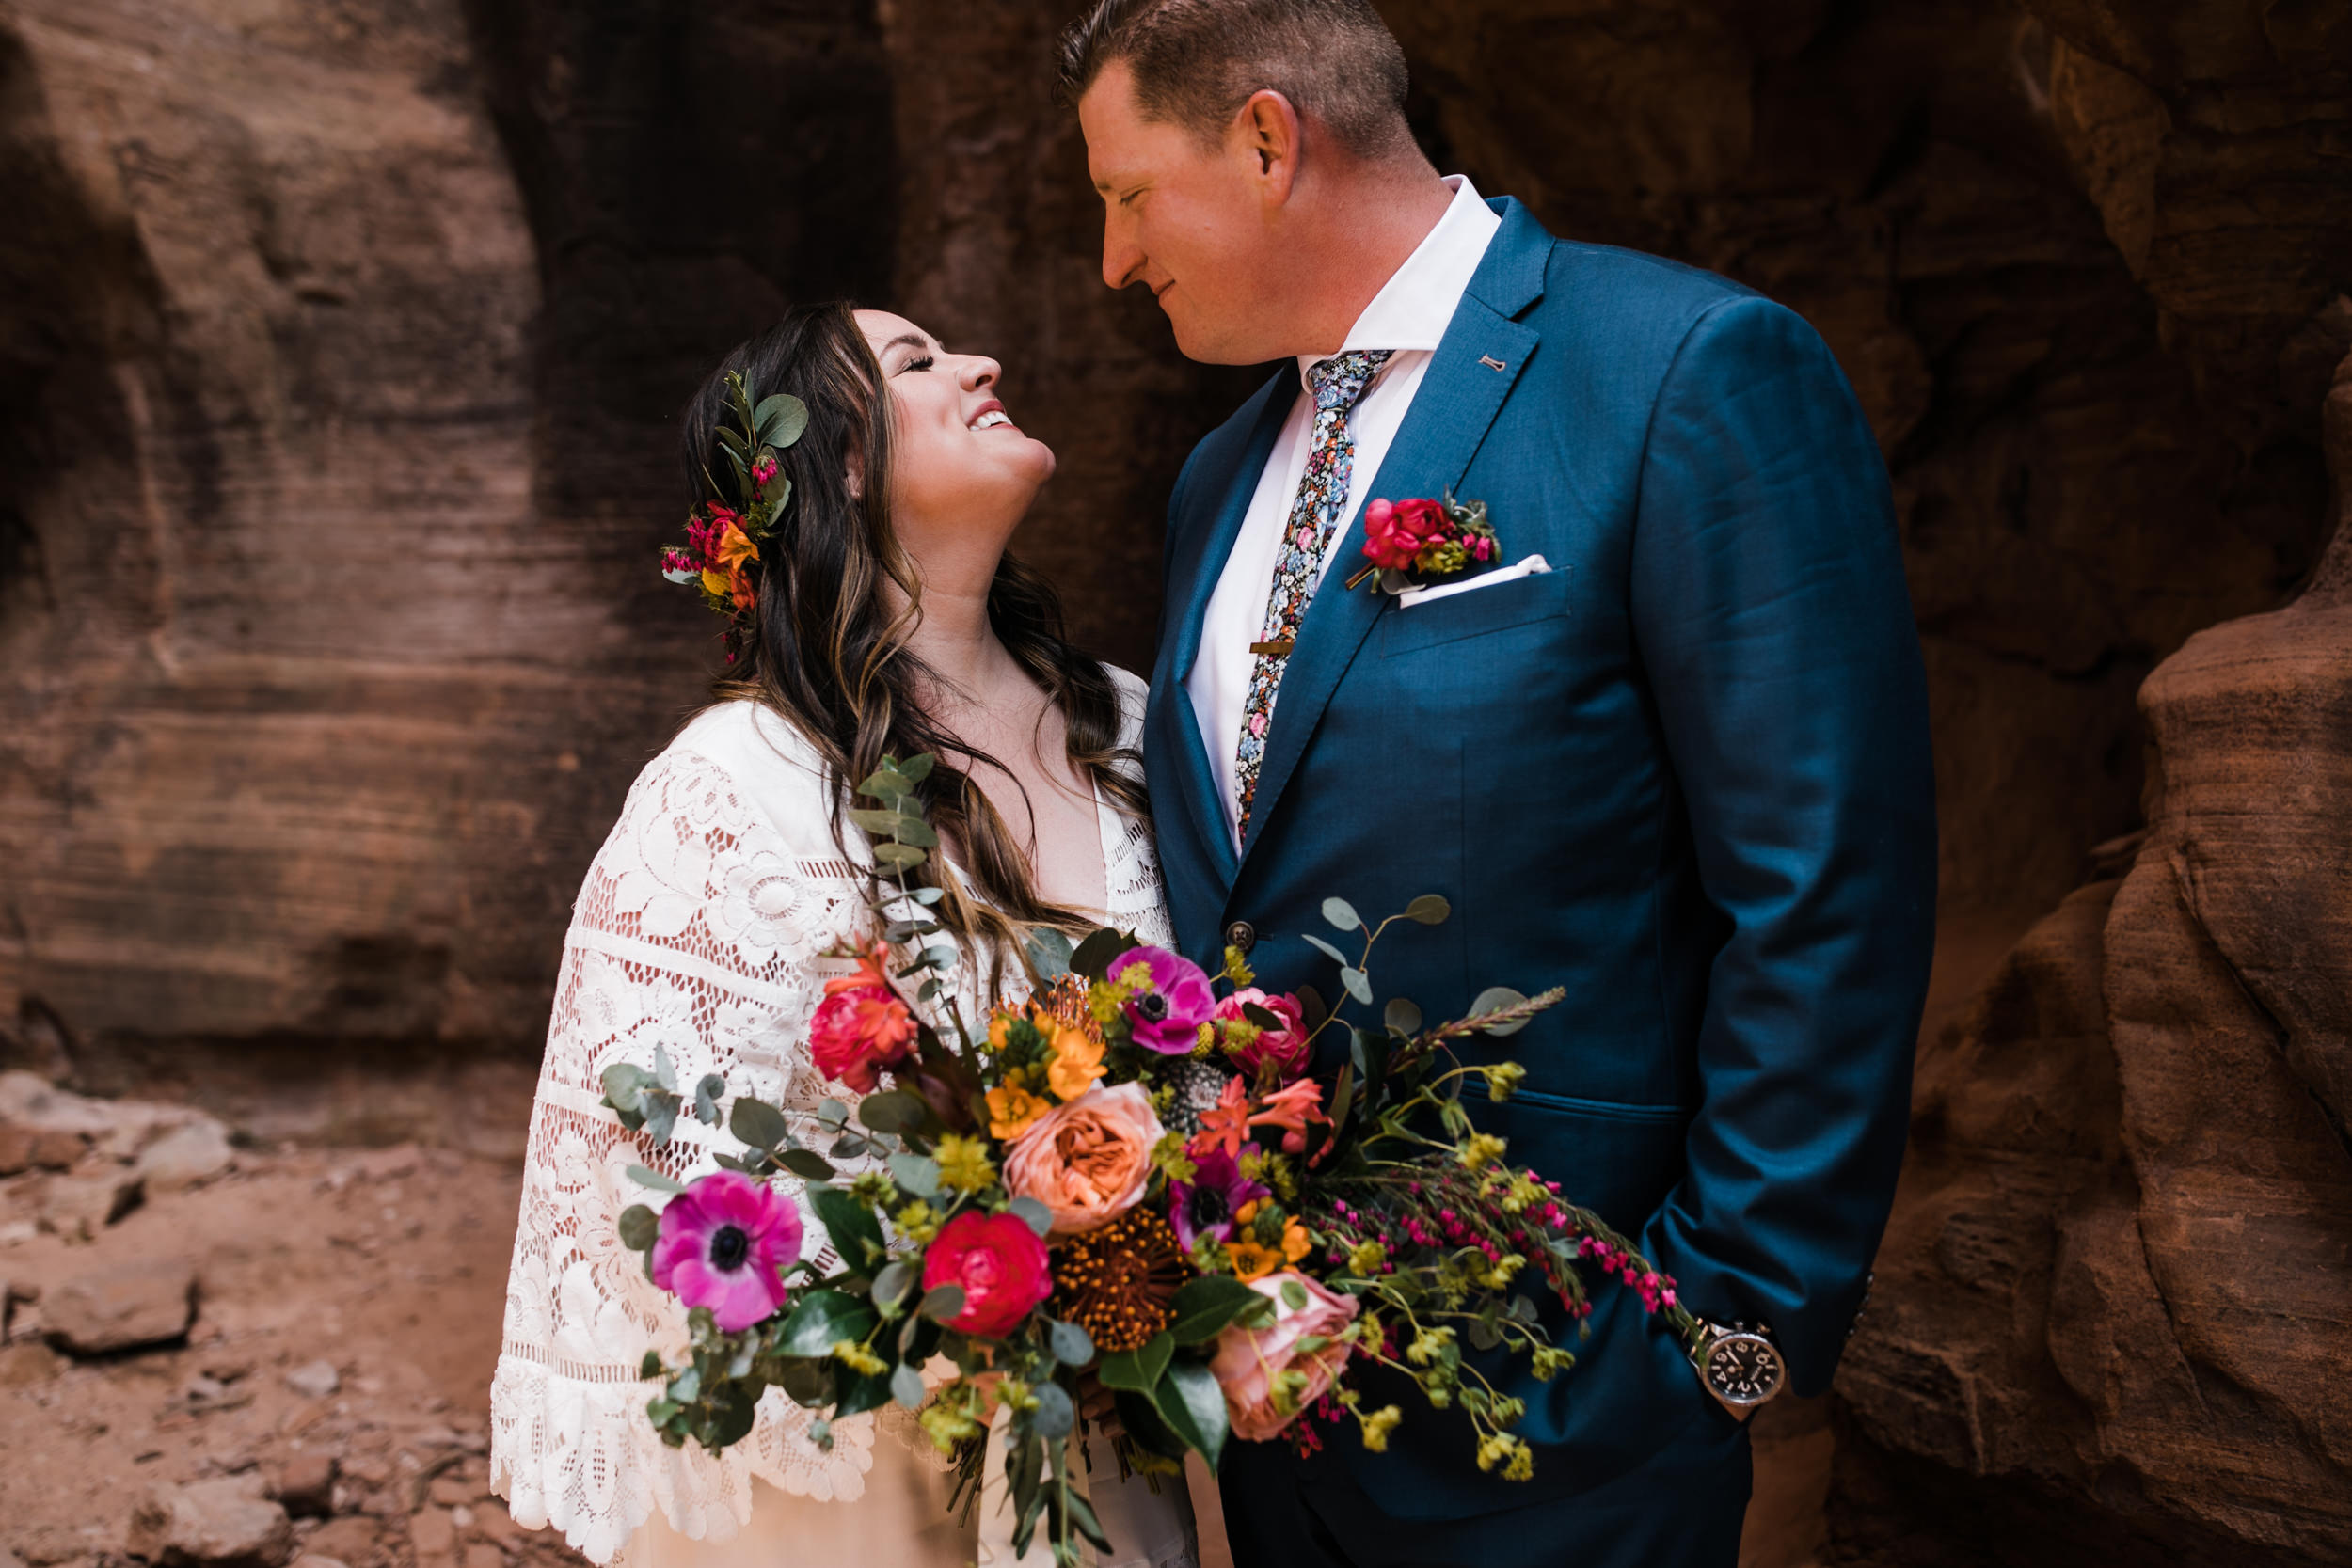 Zion national park elopement photographer | intimate wedding in the desert | alternate wedding ideas | the hearnes adventure photography